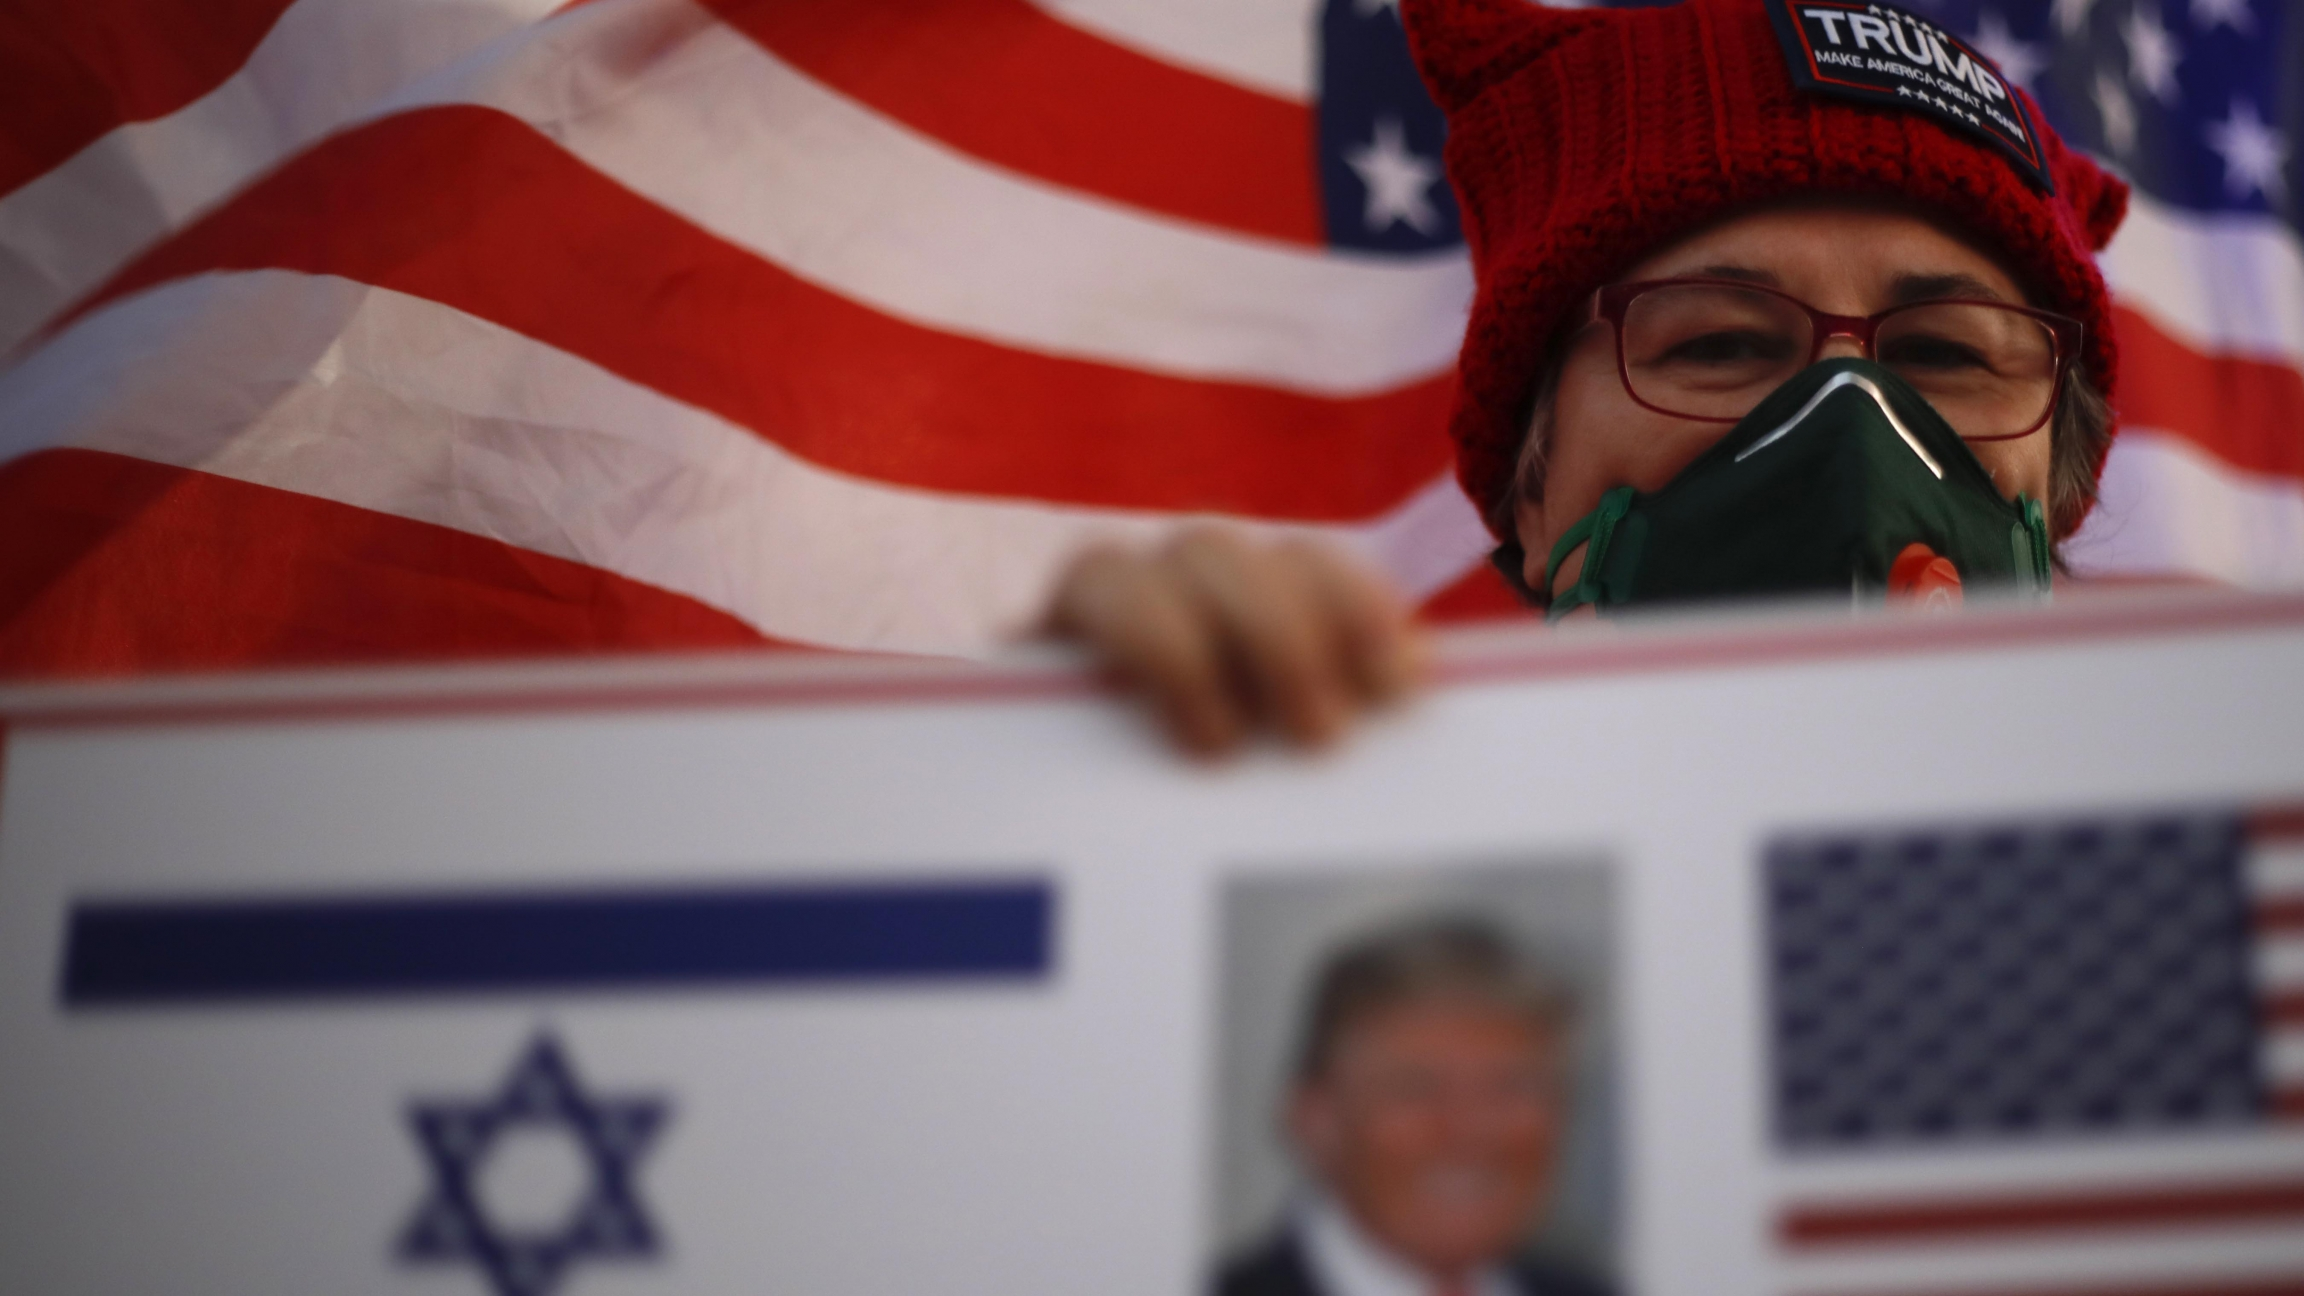 A supporter of US President Donald Trump waves Israeli and US national flags on the day of the U.S. presidential election, in Carmiel, northern Israel, Nov. 3, 2020.